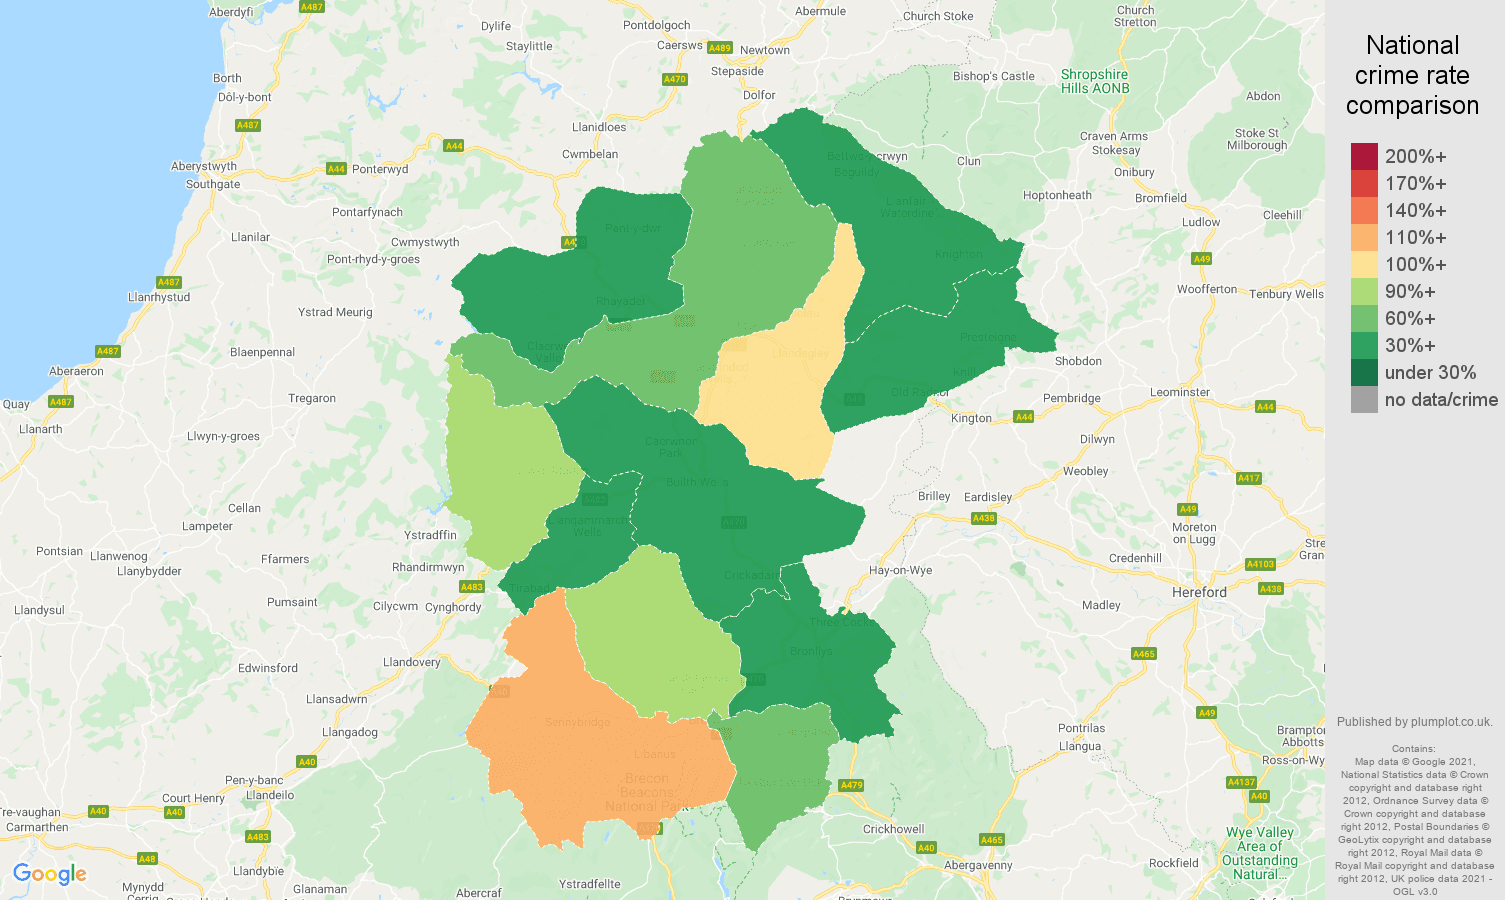 Llandrindod Wells criminal damage and arson crime rate comparison map